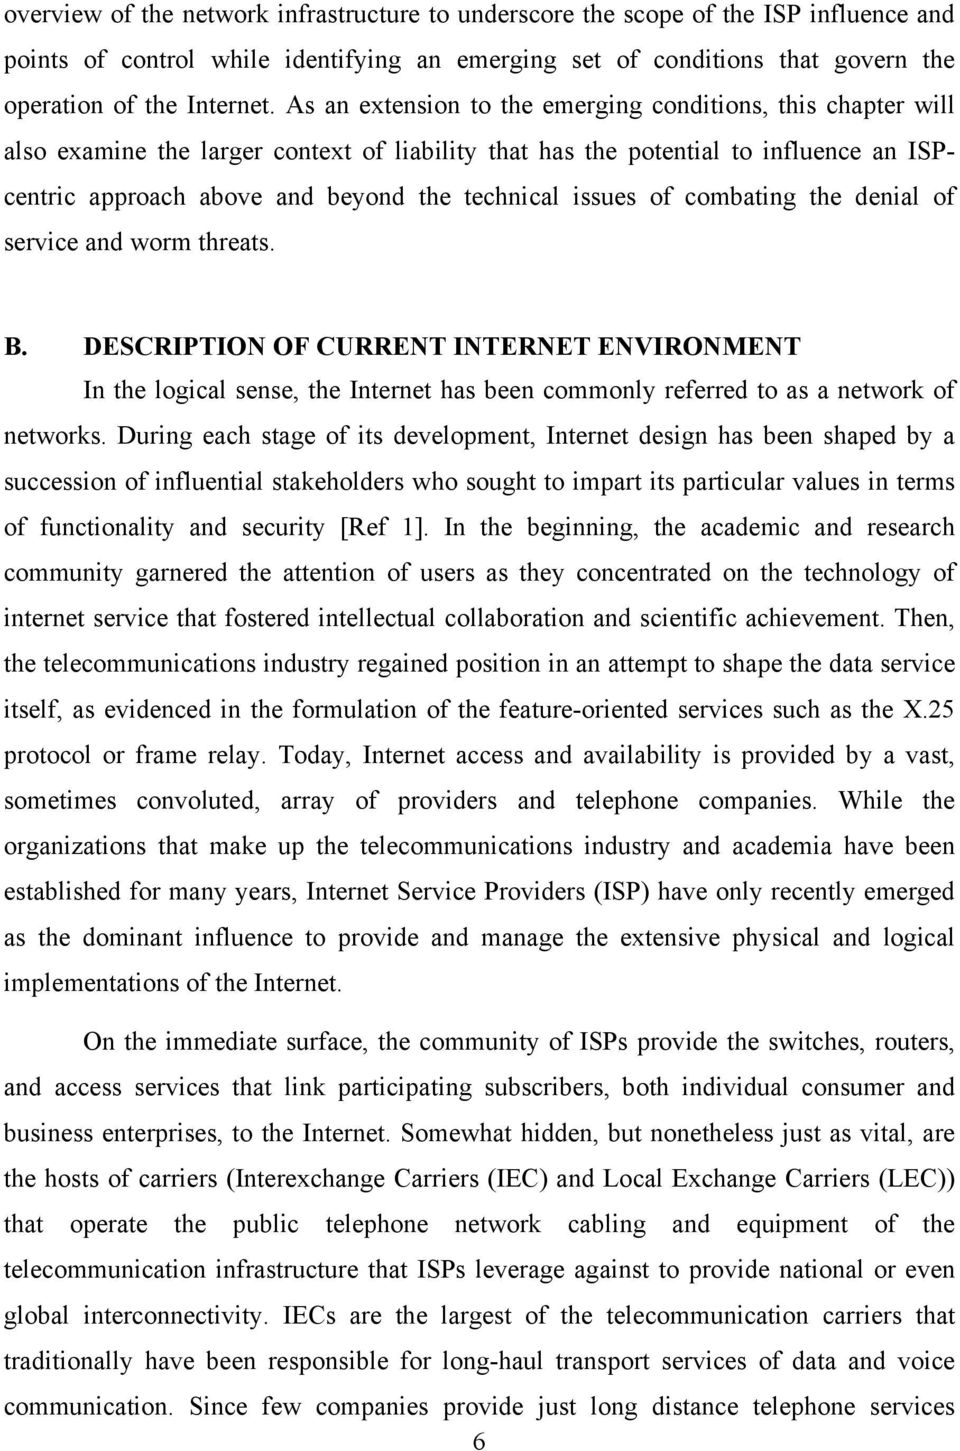 issues of combating the denial of service and worm threats. B. DESCRIPTION OF CURRENT INTERNET ENVIRONMENT In the logical sense, the Internet has been commonly referred to as a network of networks.